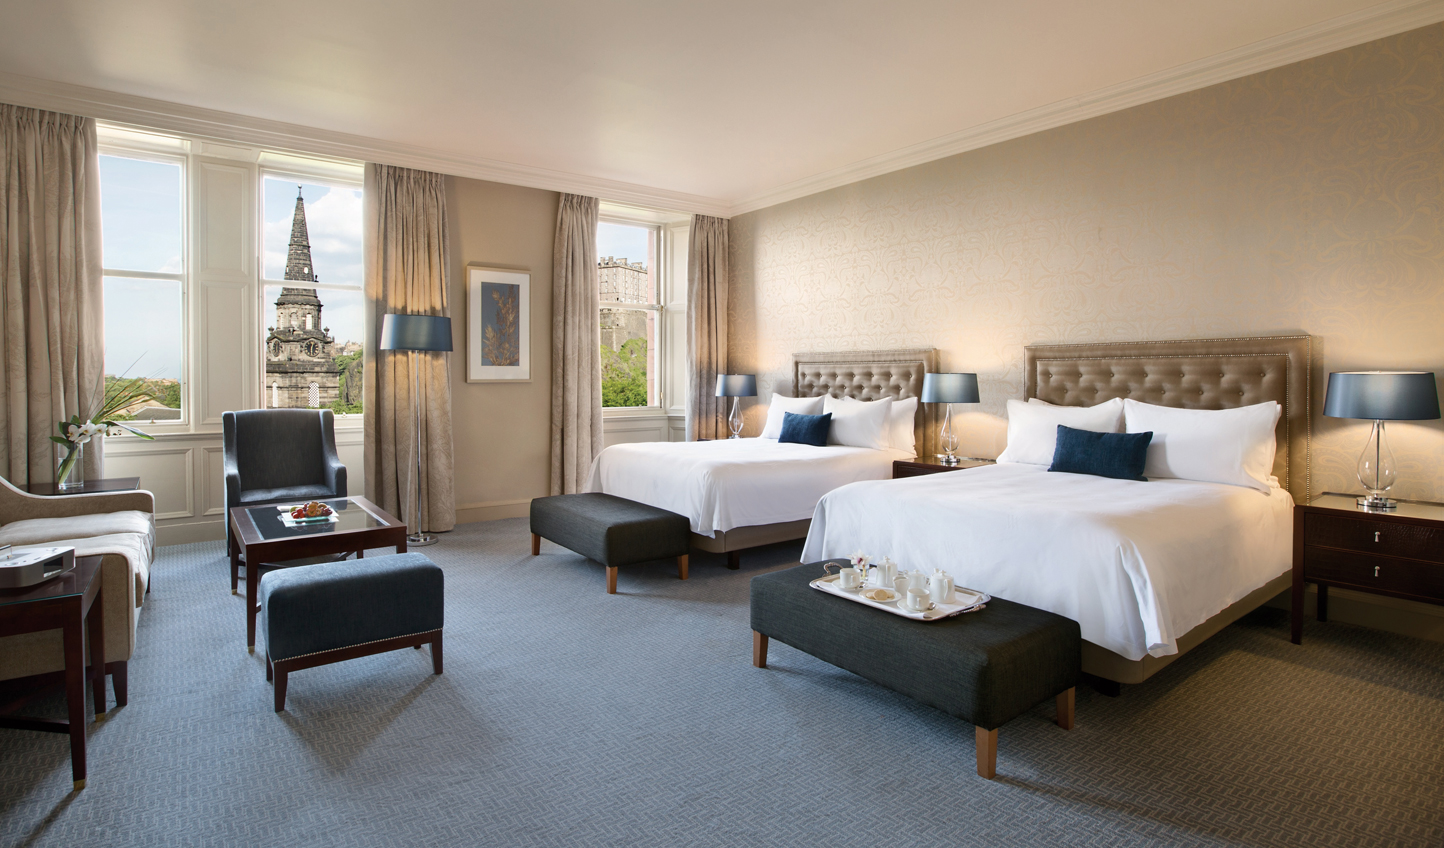 Soak in views over Princes Street Gardens up to the Castle